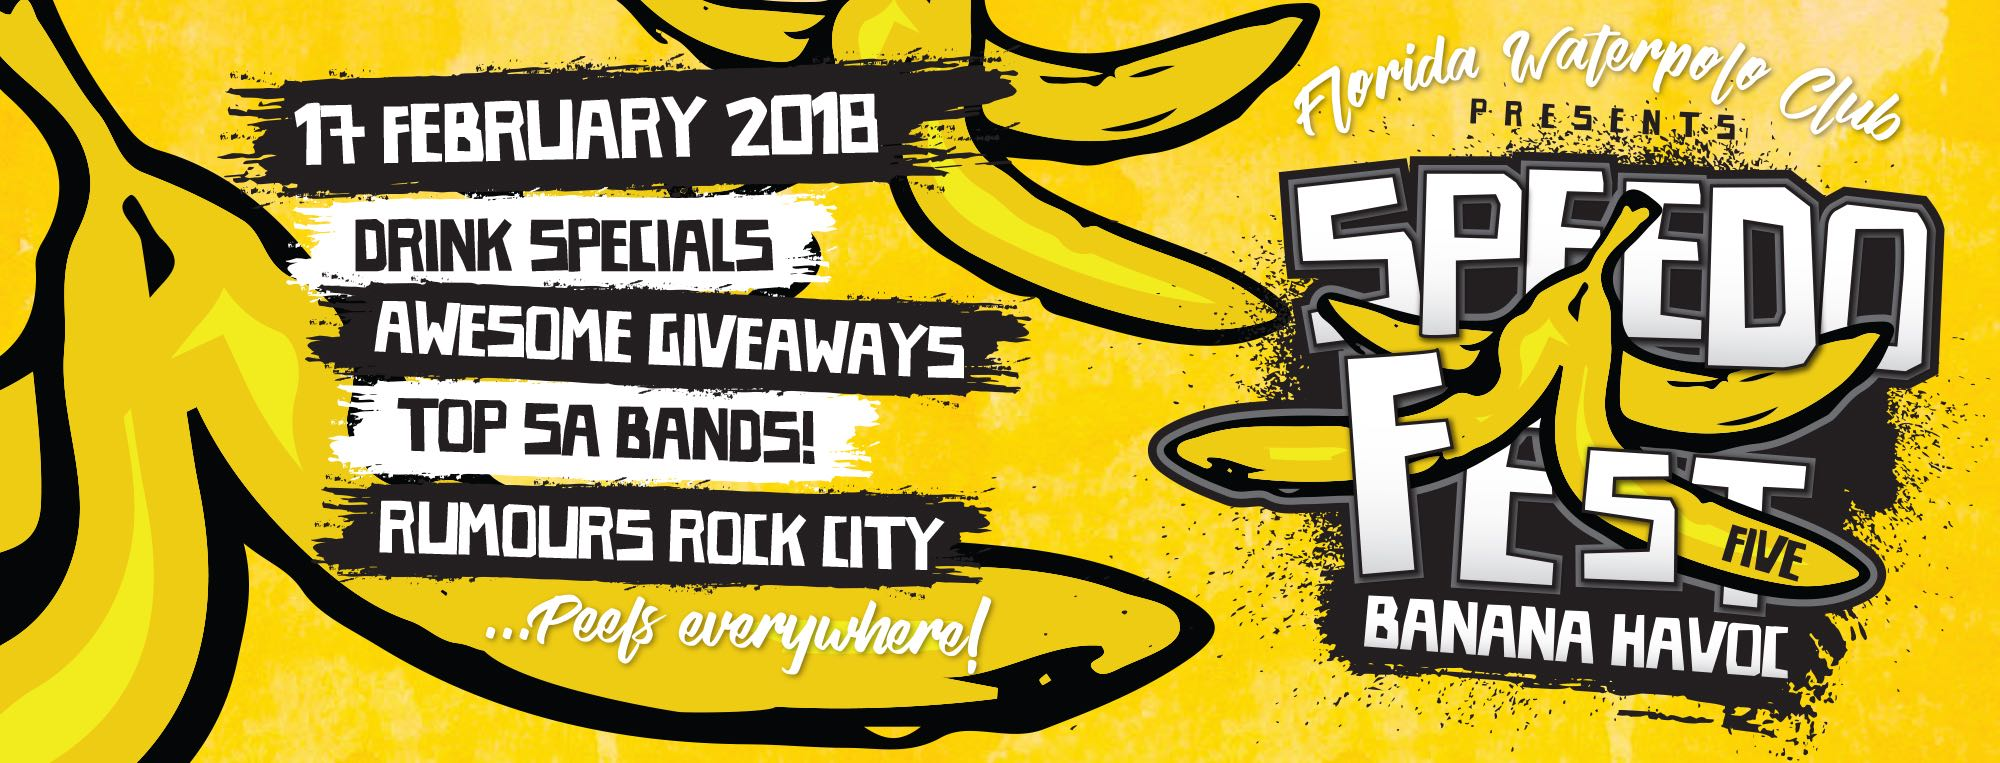 Details for Speedofest 5 Banana Havoc Music Festival